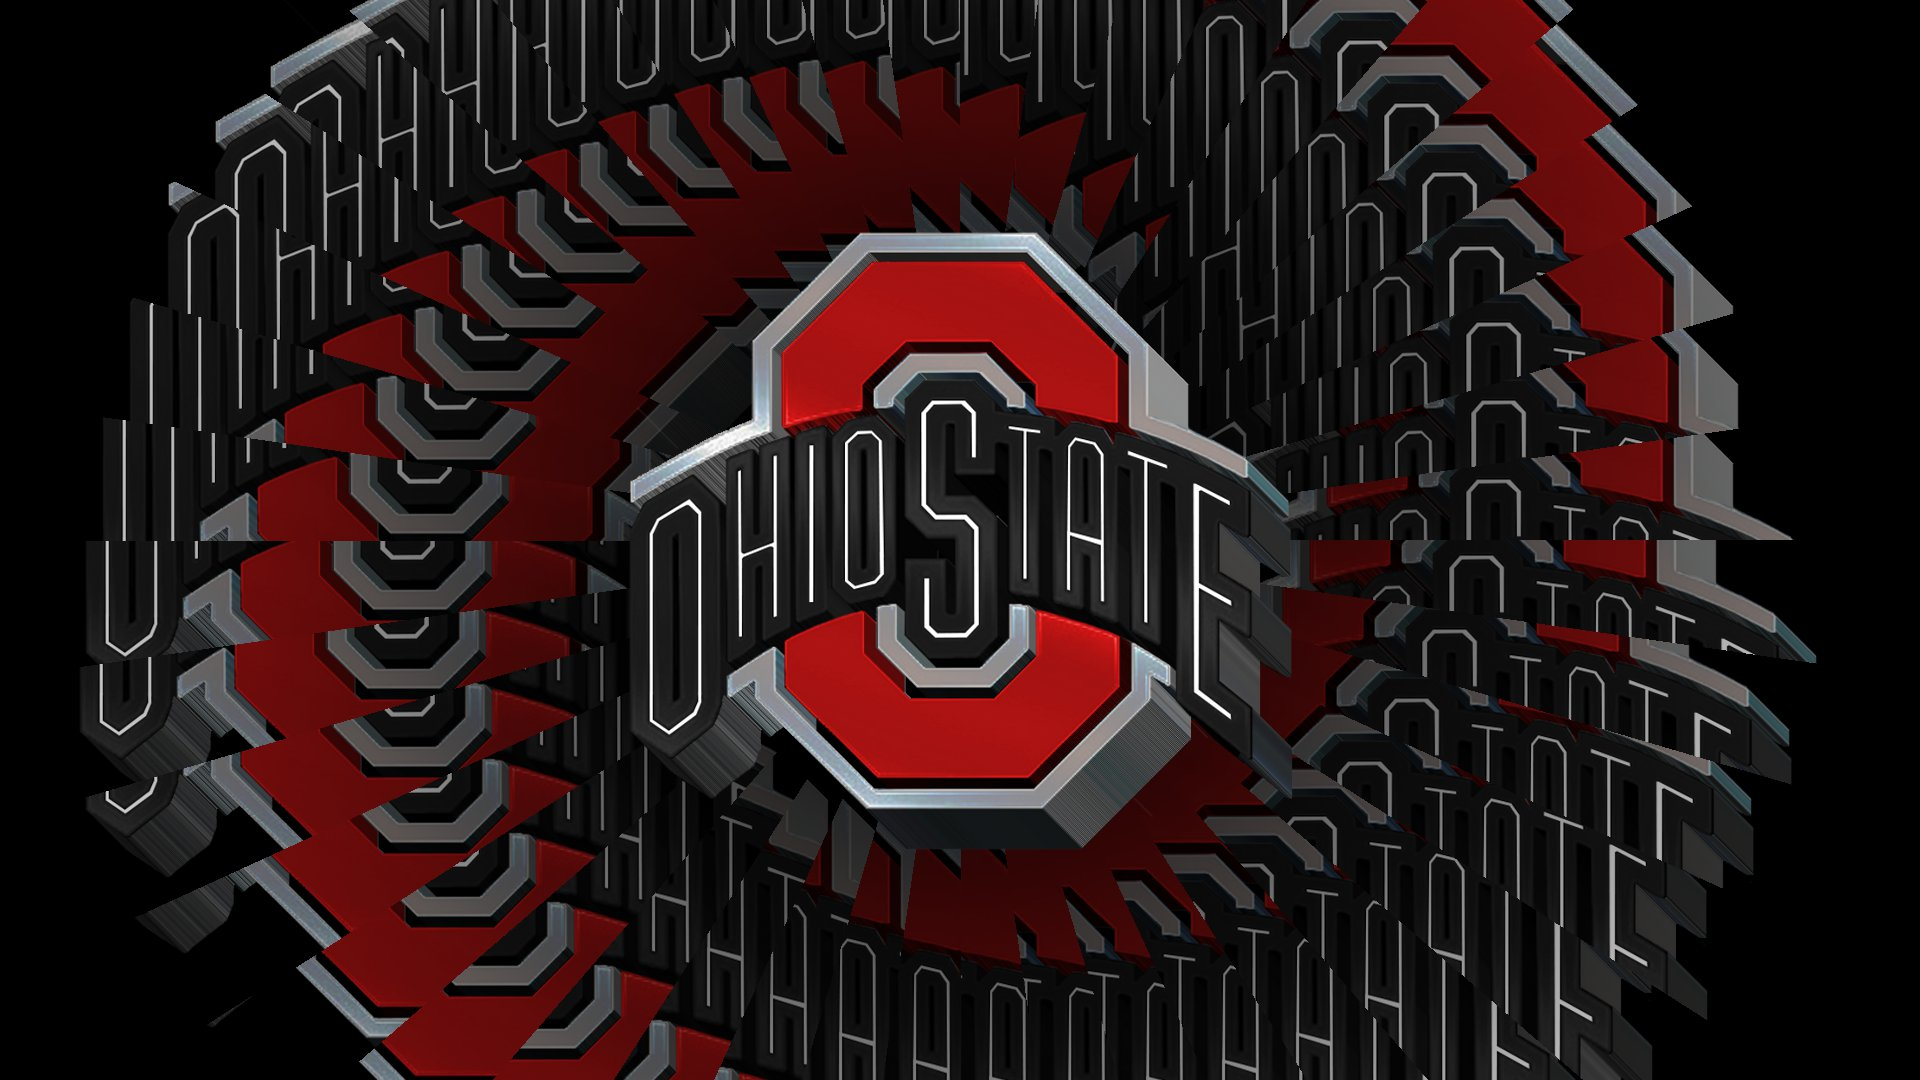 Ohio State Football images OSU Wallpaper 411 HD wallpaper and 1920x1080